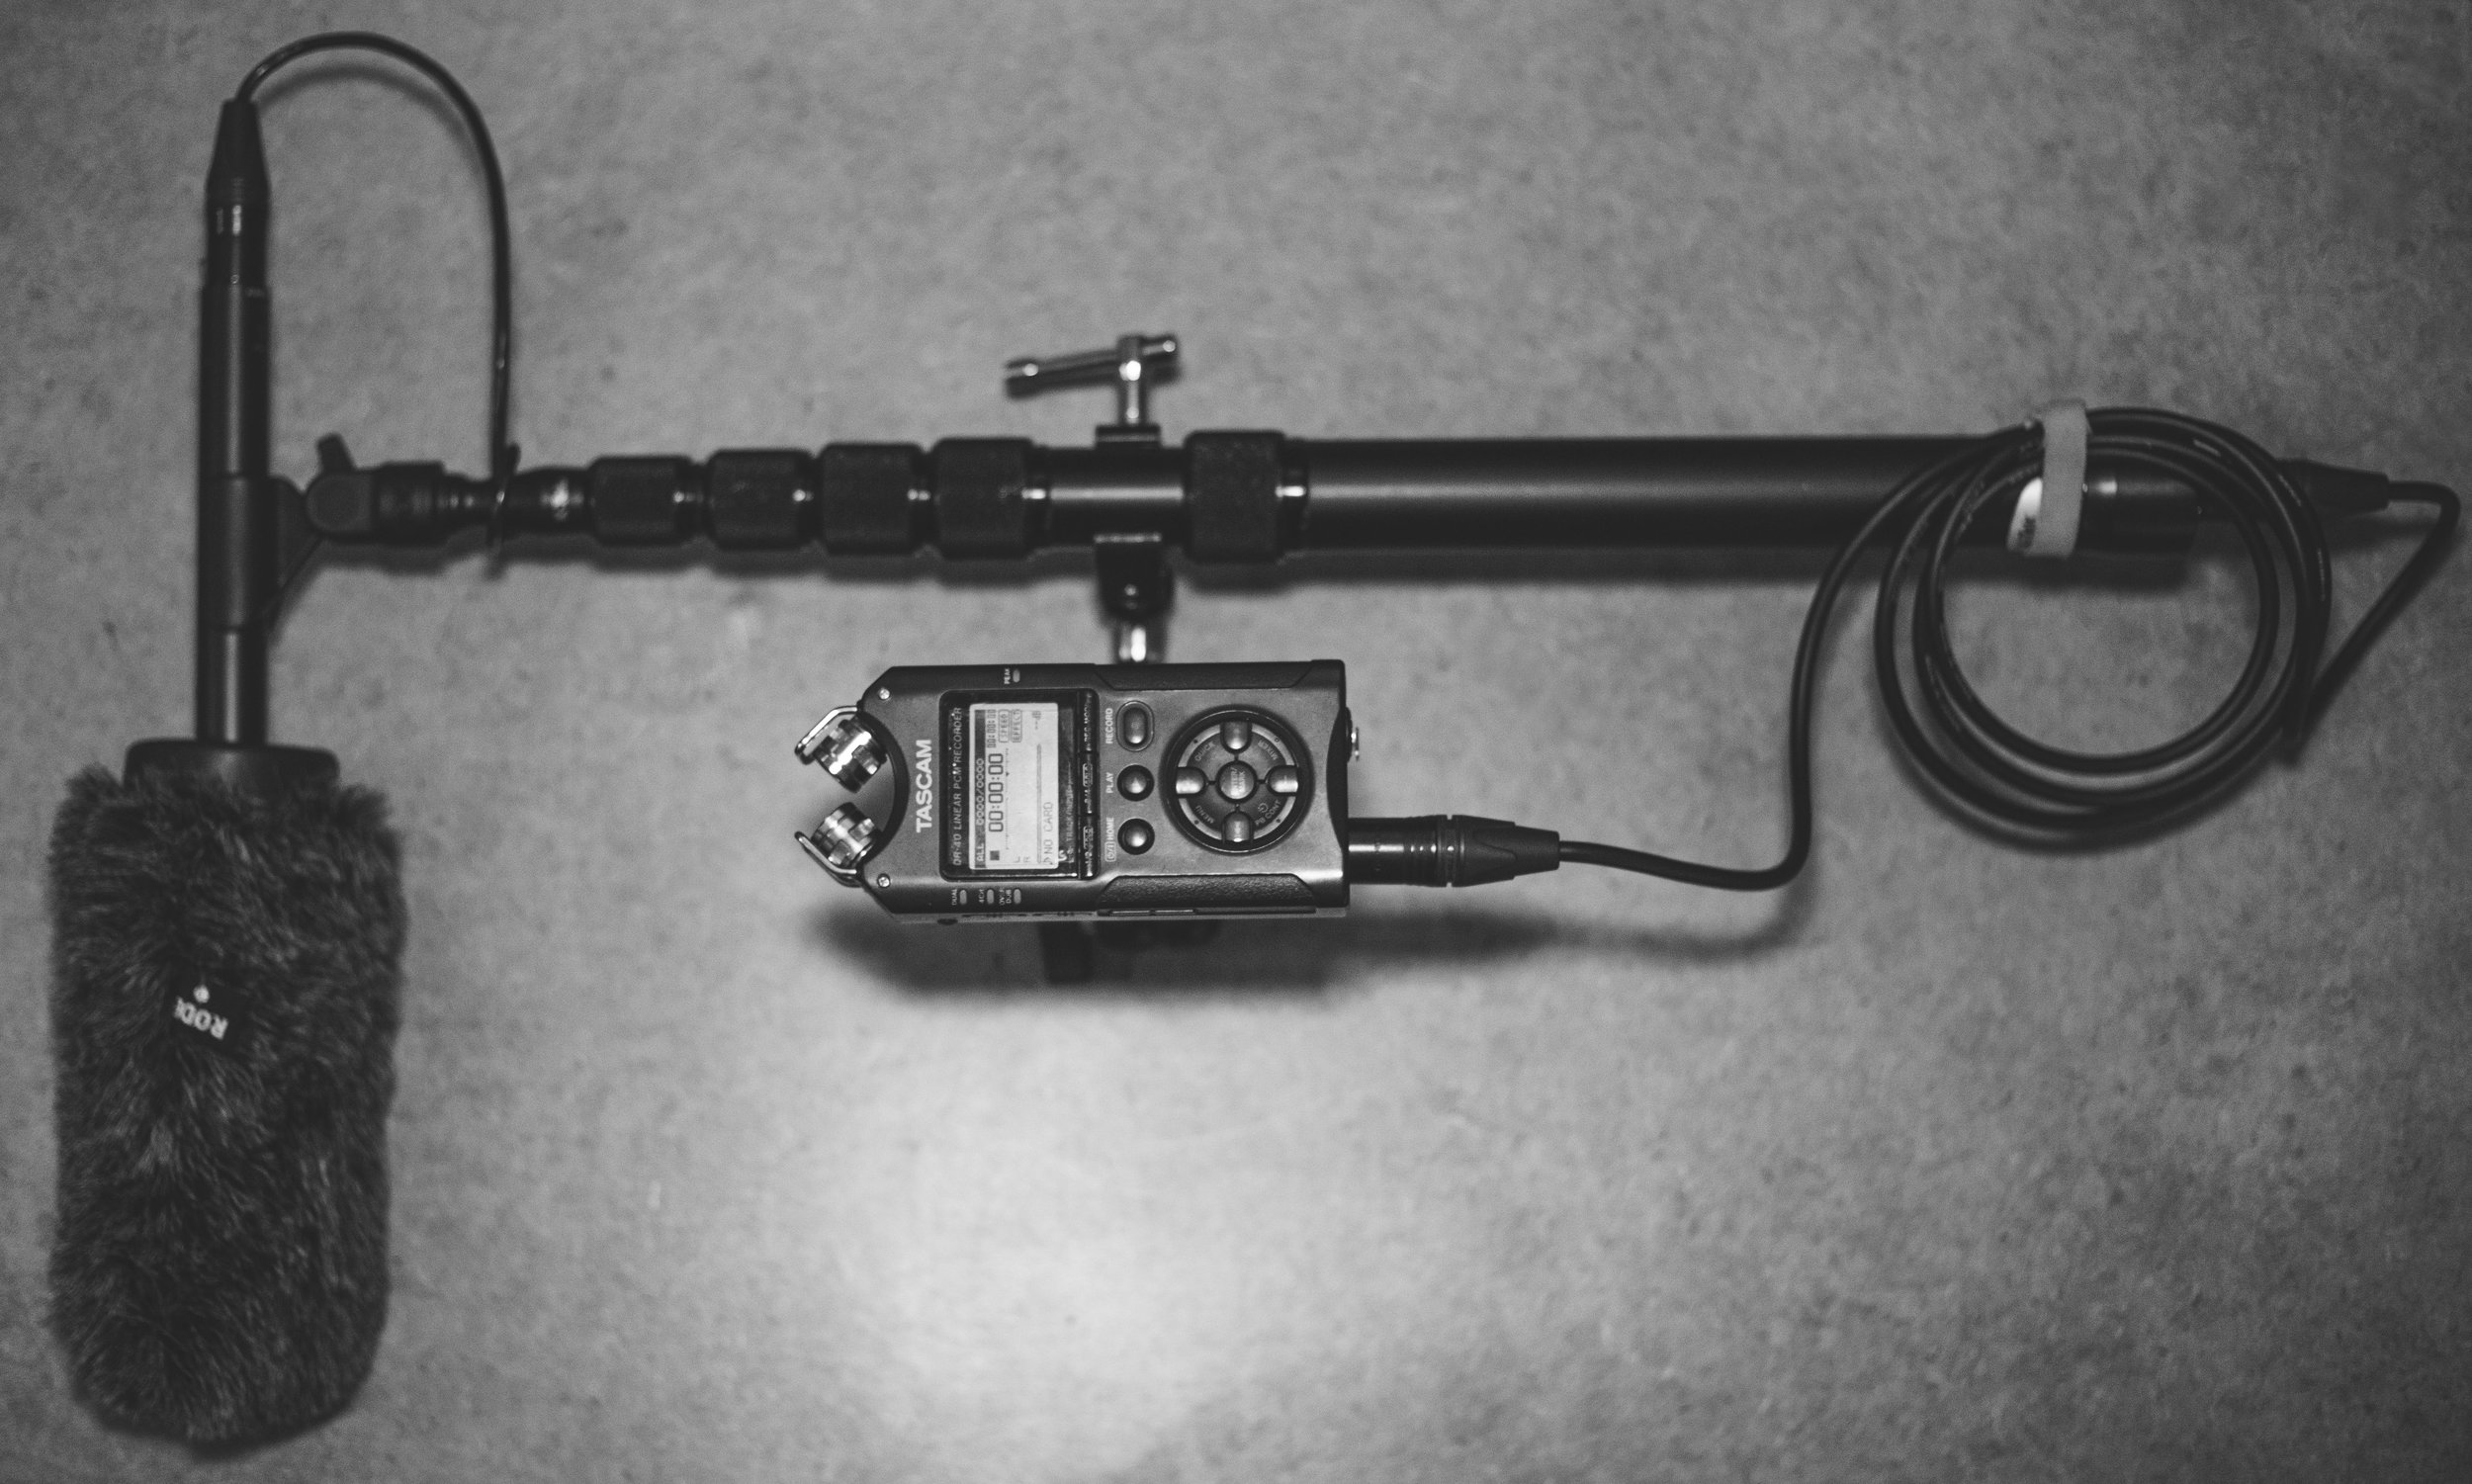 Above is an  NTG4+ Shotgun microphone ,  K-Tek Avalon Series Boom Pole , and a  Tascam DR-40  attached by a  GkGk Articulating Friction Magic Arm .